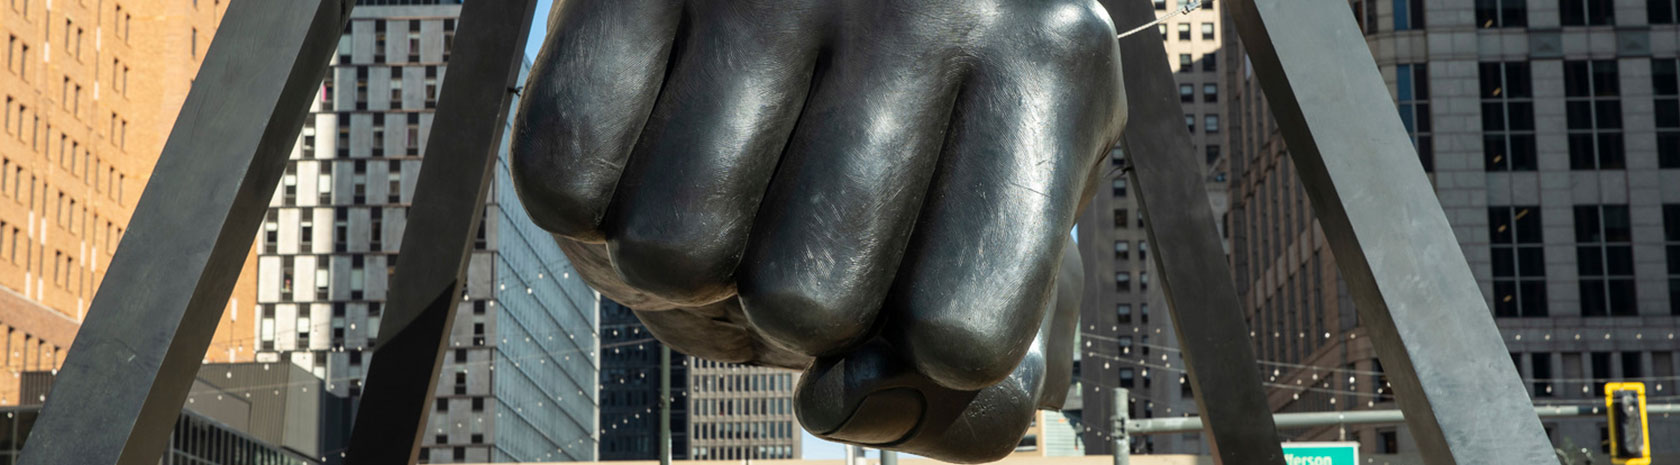 A focus on the giant fist of the Monument to Joe Louis in Detroit; which is a forearm and fist held up by 4 pillars